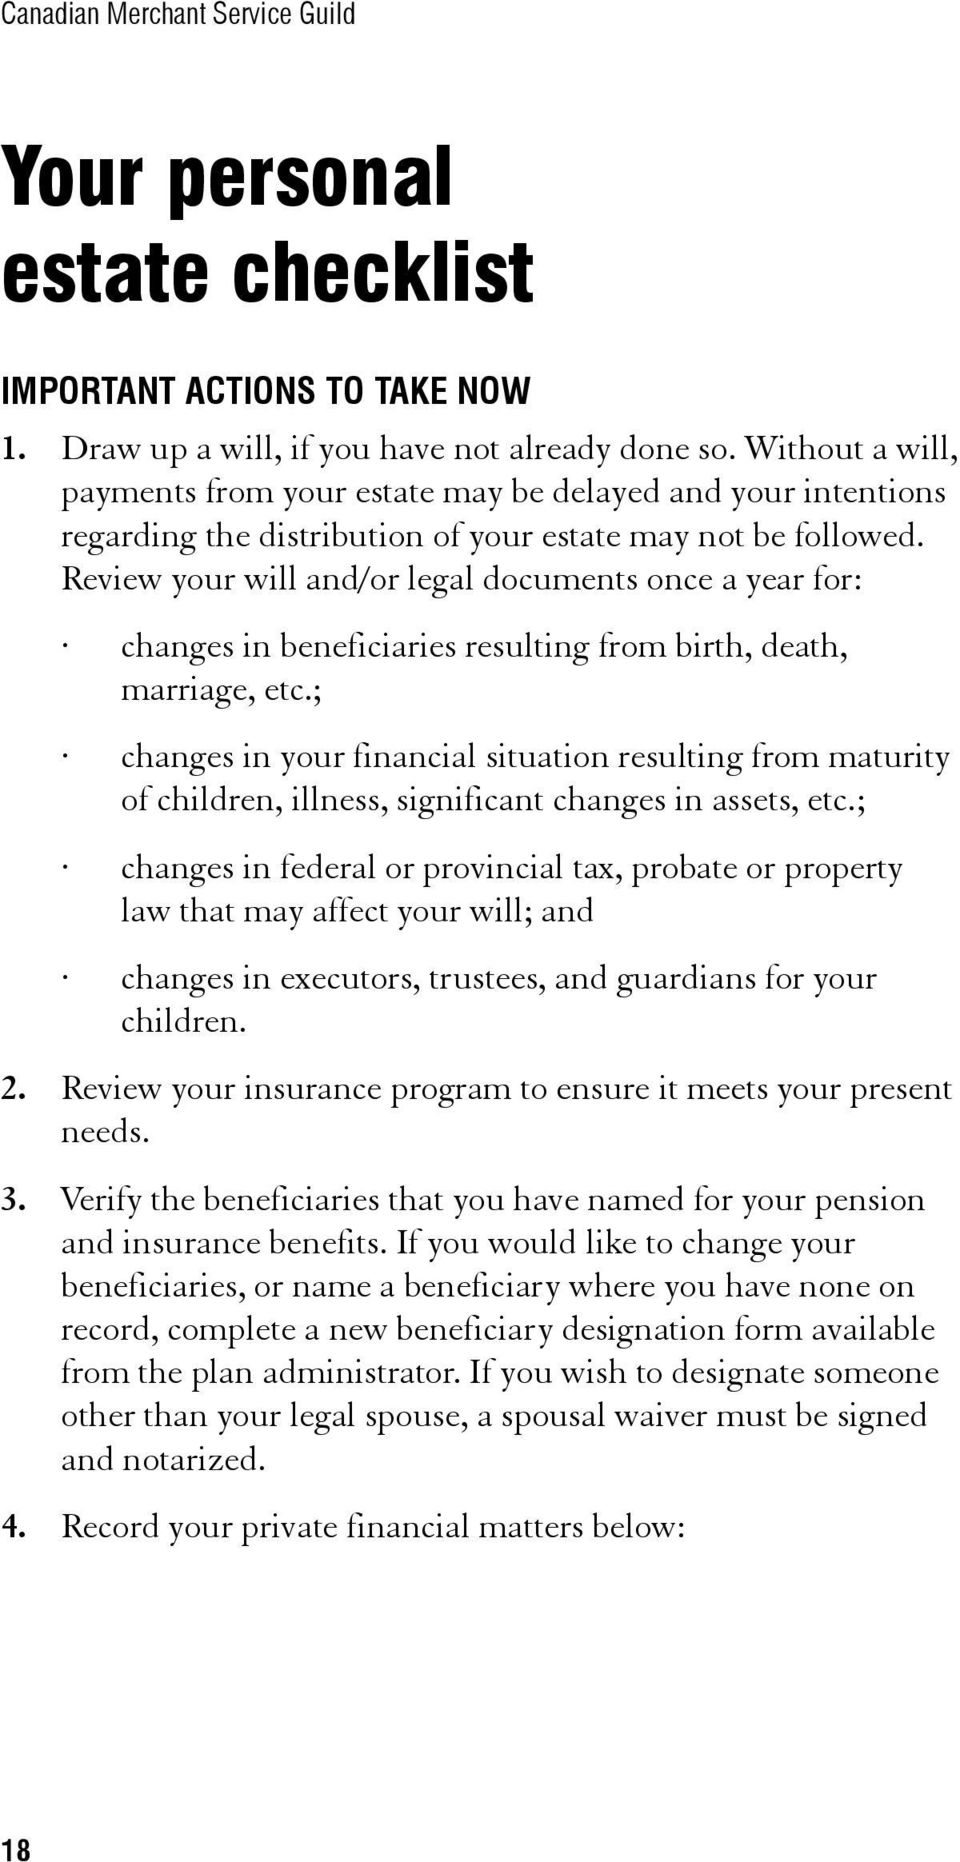 Review your will and/or legal documents once a year for: changes in beneficiaries resulting from birth, death, marriage, etc.